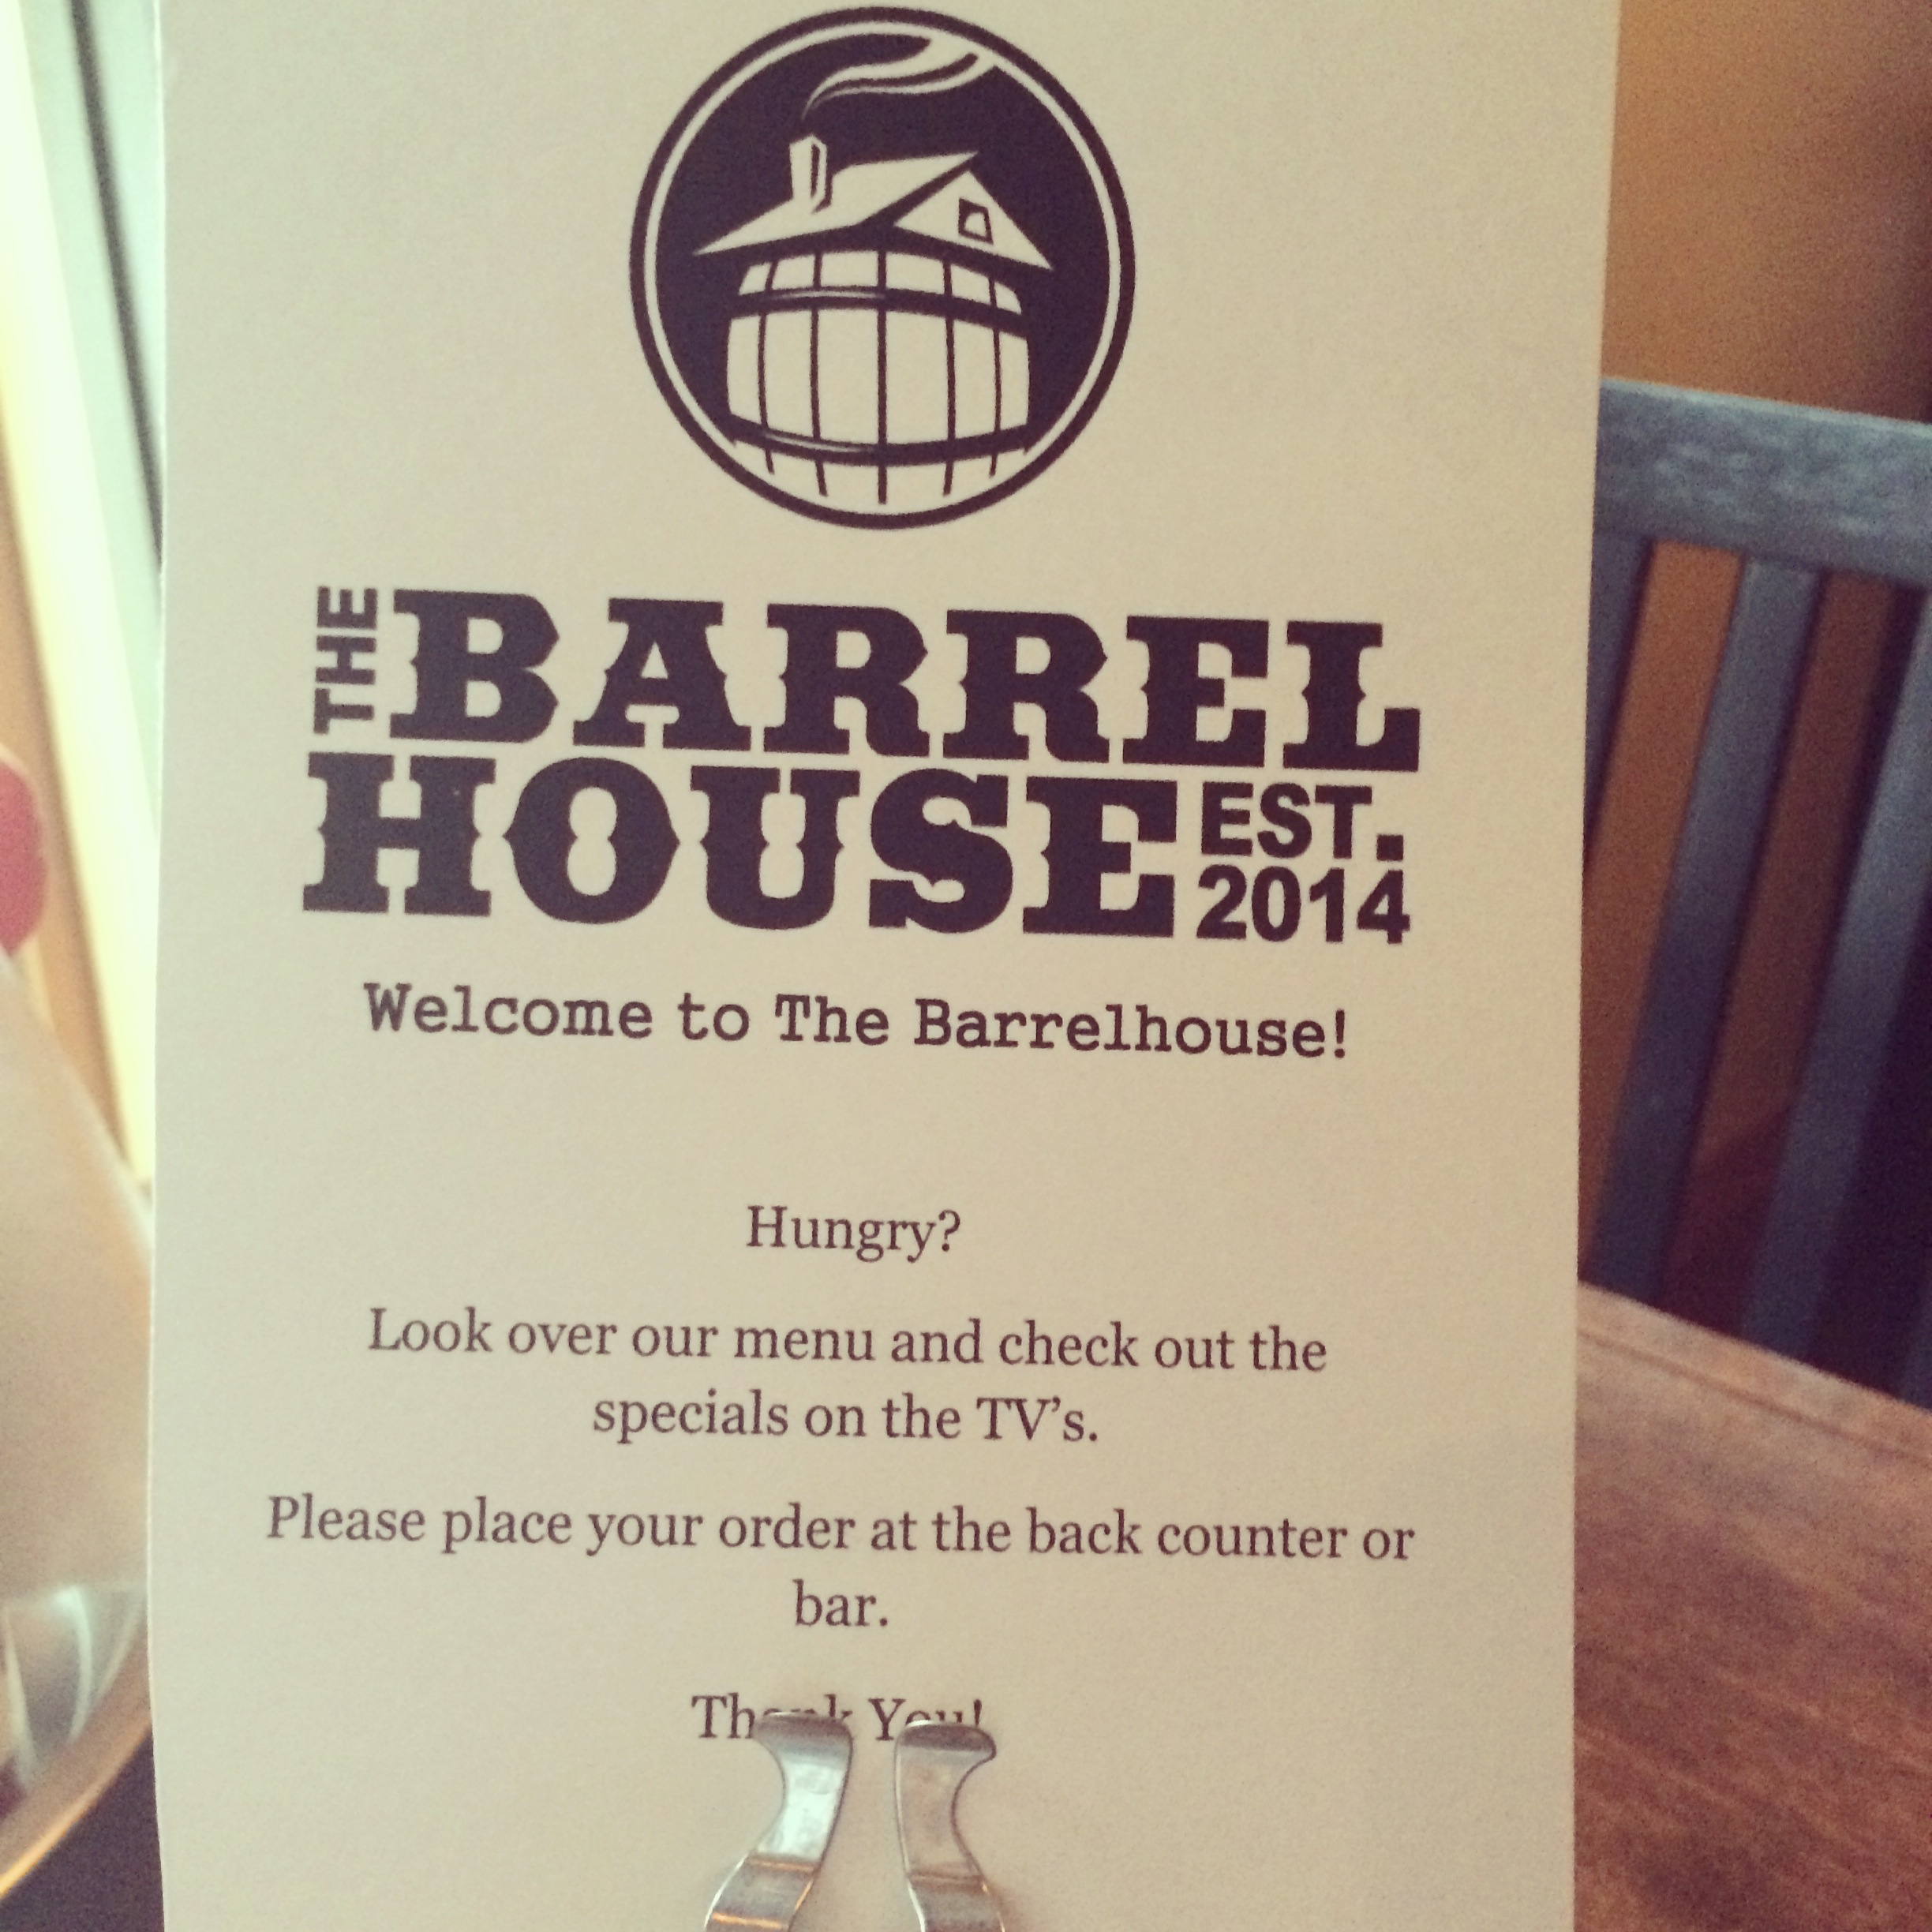 The Barrelhouse